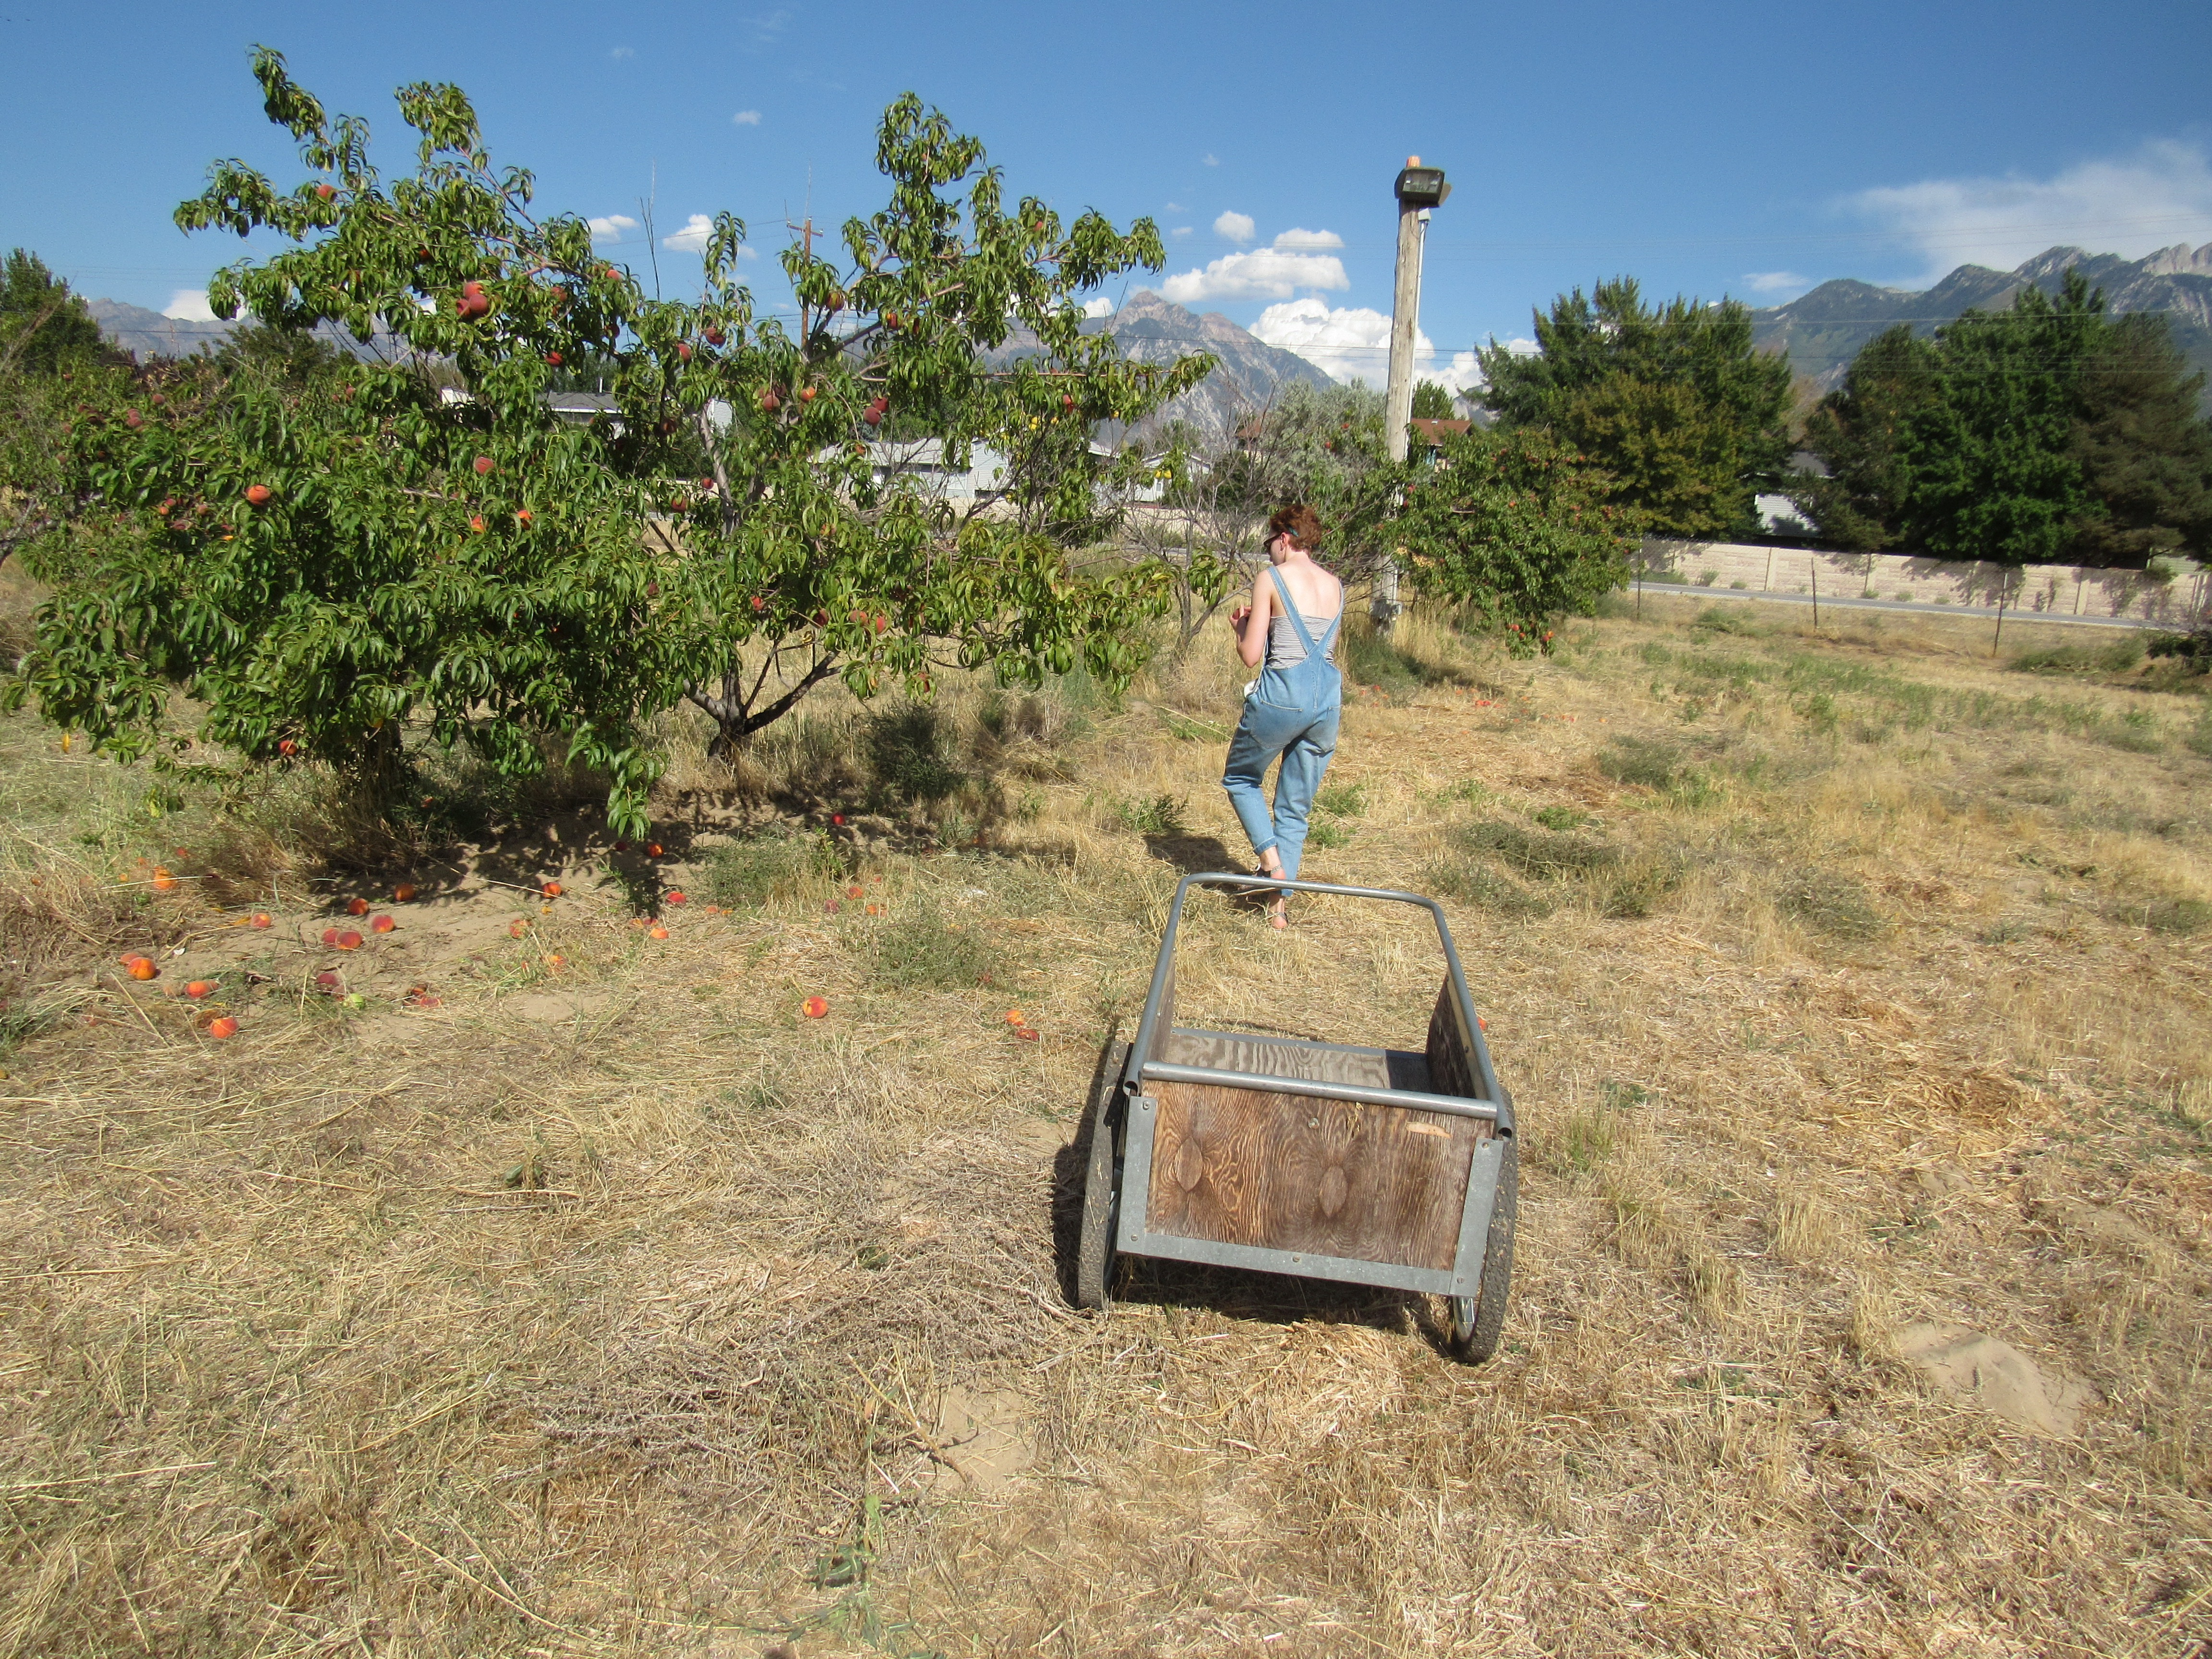 A girl with short hair and wearing overalls stands behind a wheelbarrow and next to a tree full of peaches.